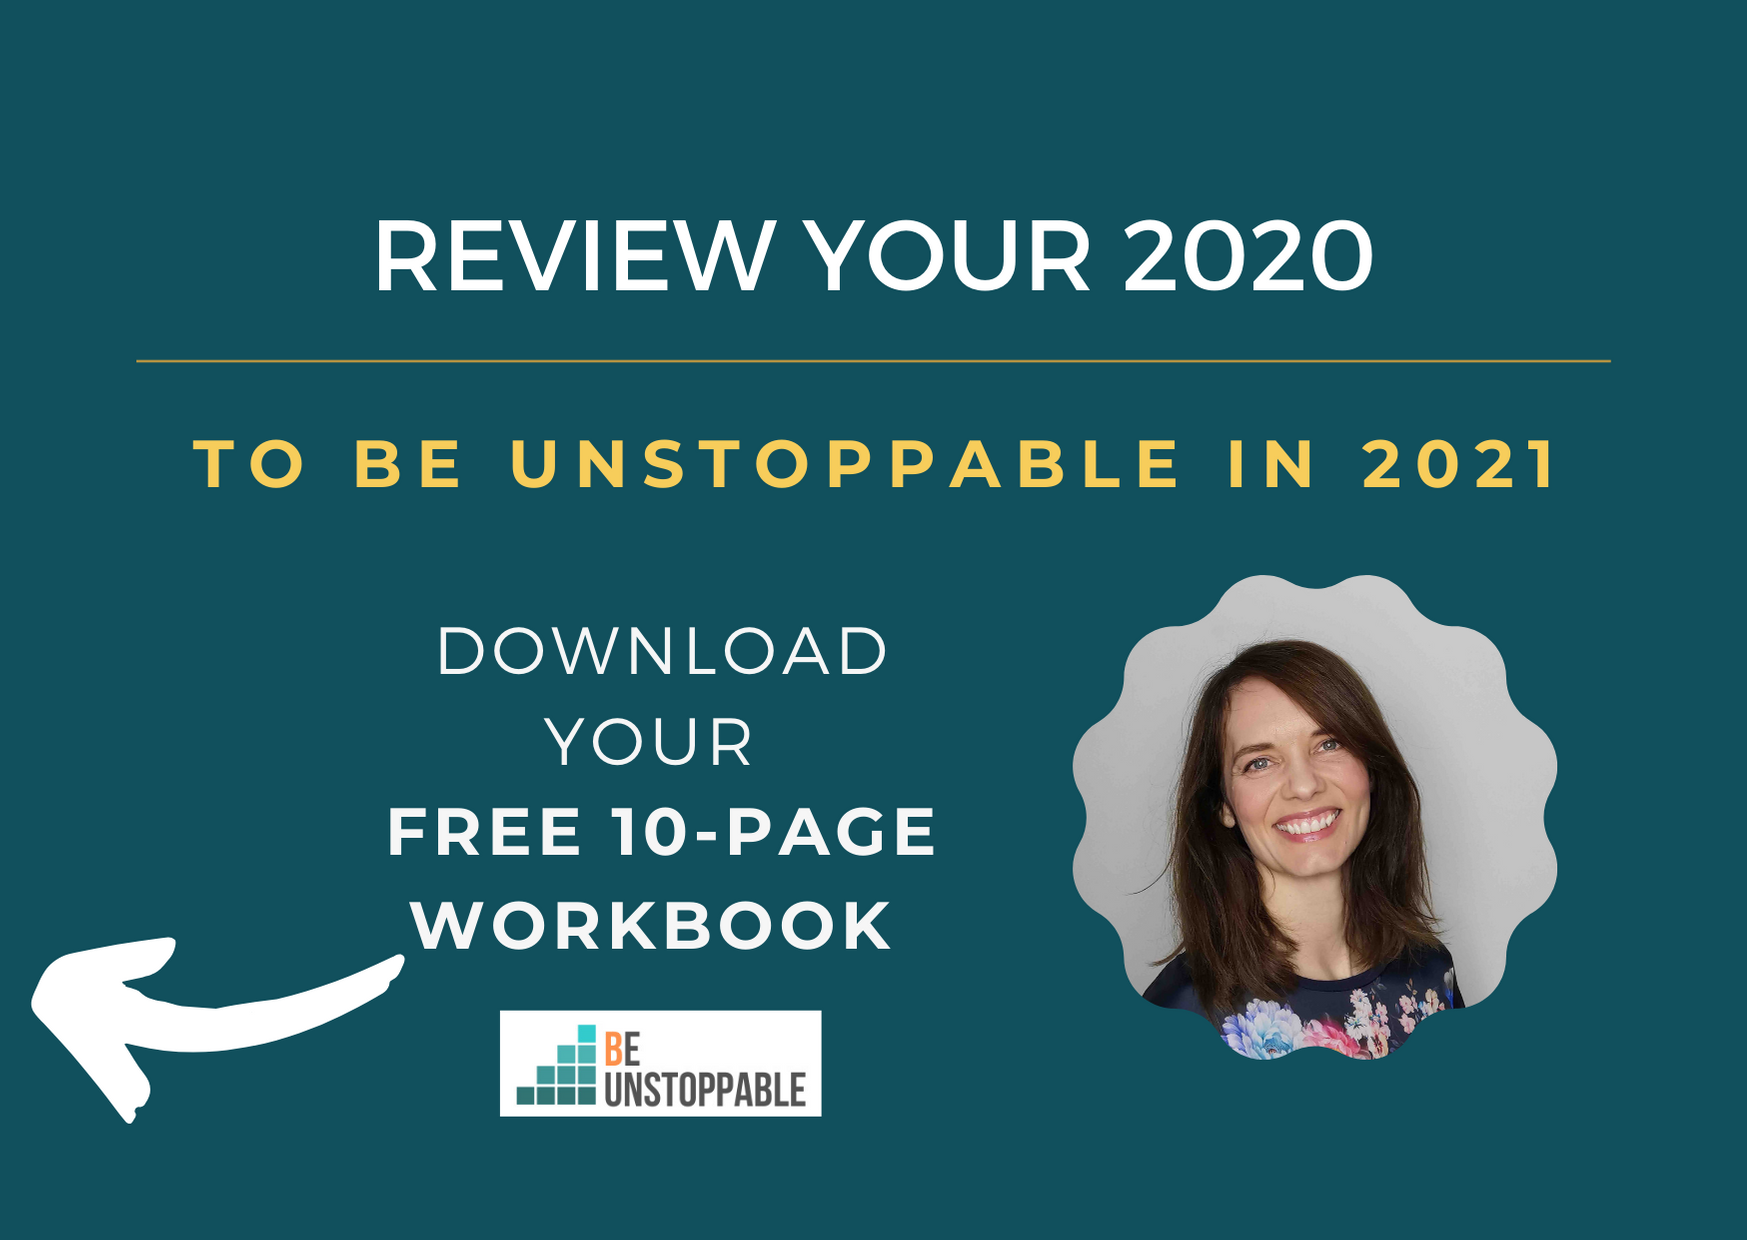 Review 2020 to be unstoppable in 2021